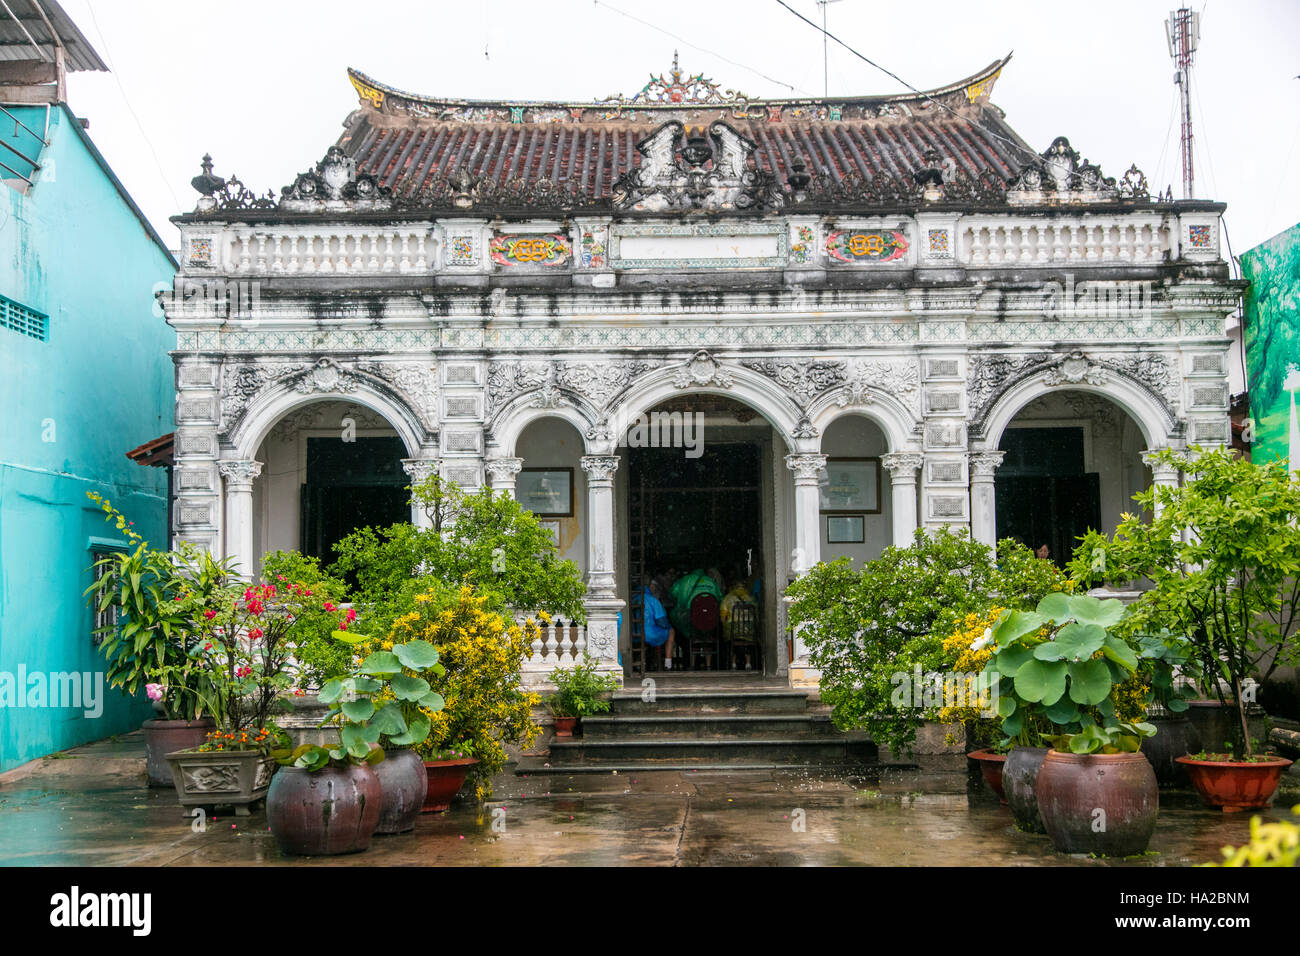 Huynh Thuy Le, Home of Marguerite Duras Lover, Sa Dec, Mekong River, Vietnam, Asia - Stock Image